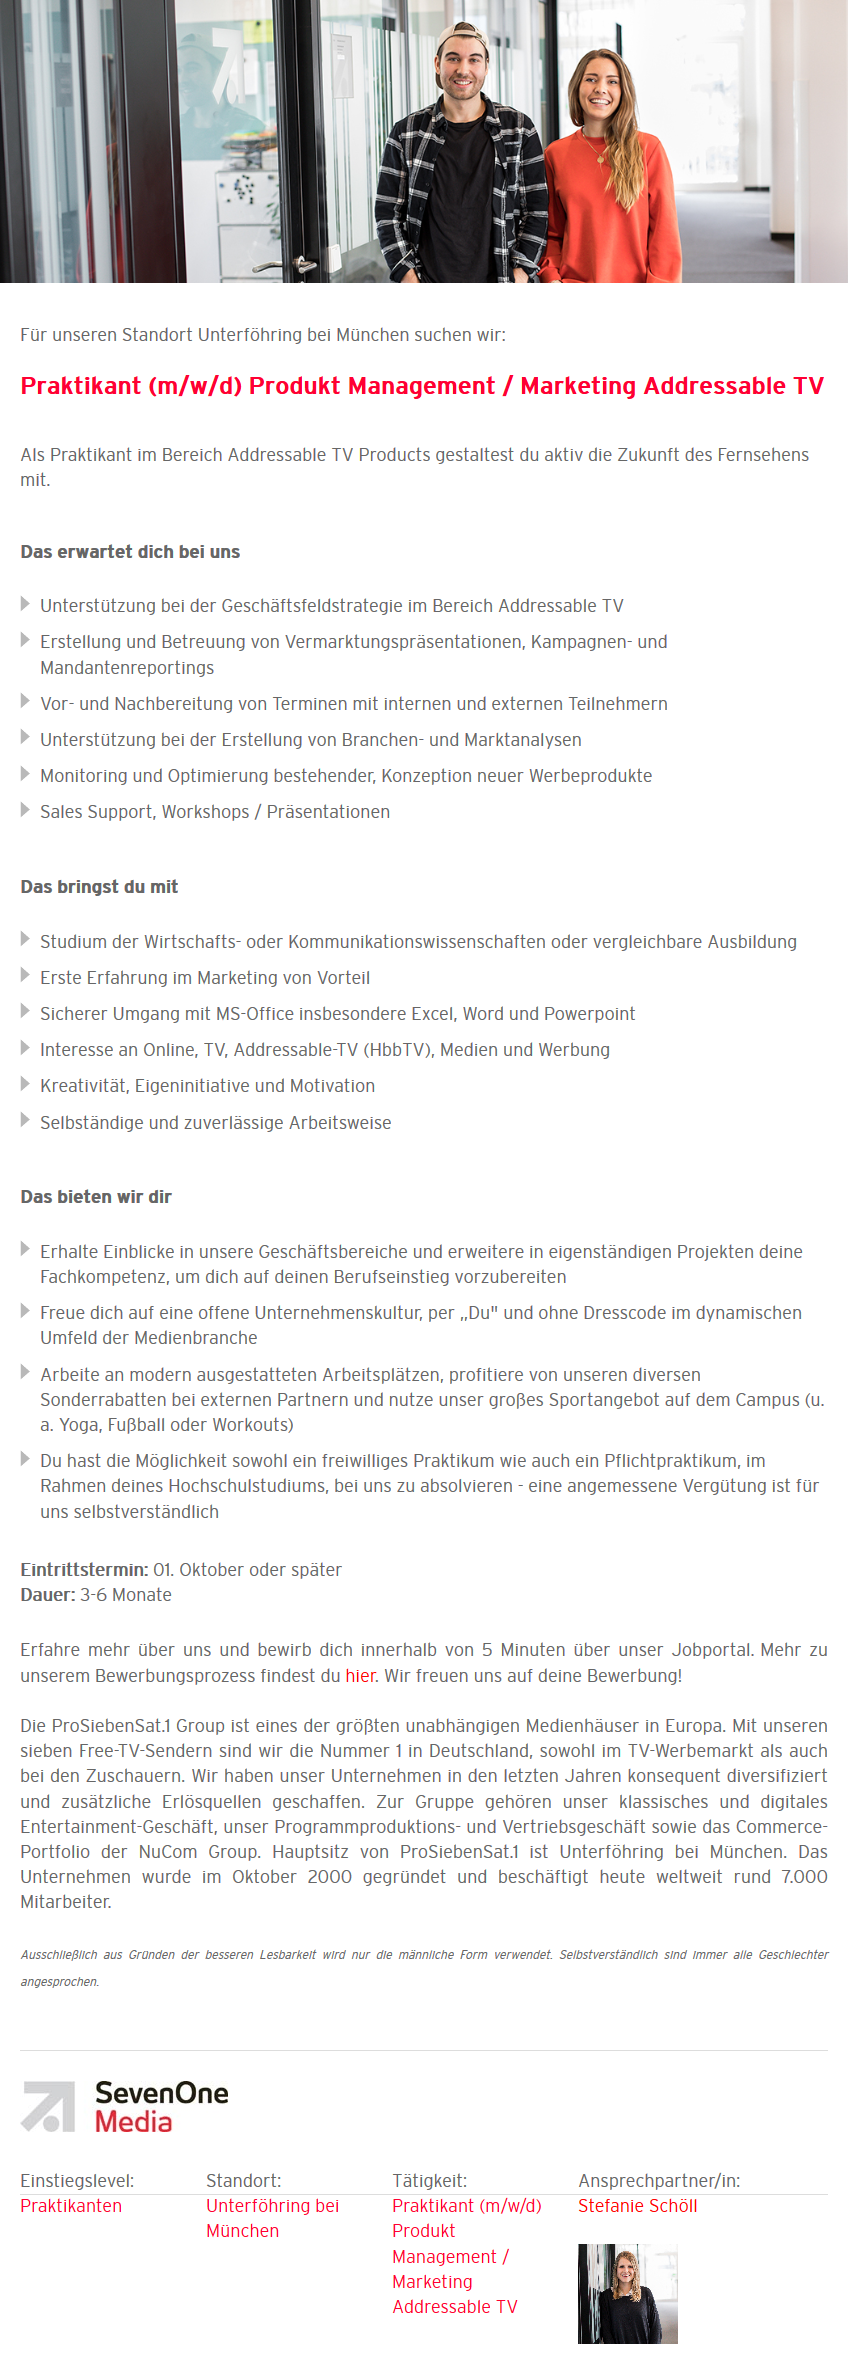 Praktikant (m/w/d) Produkt Management / Marketing Addressable TV